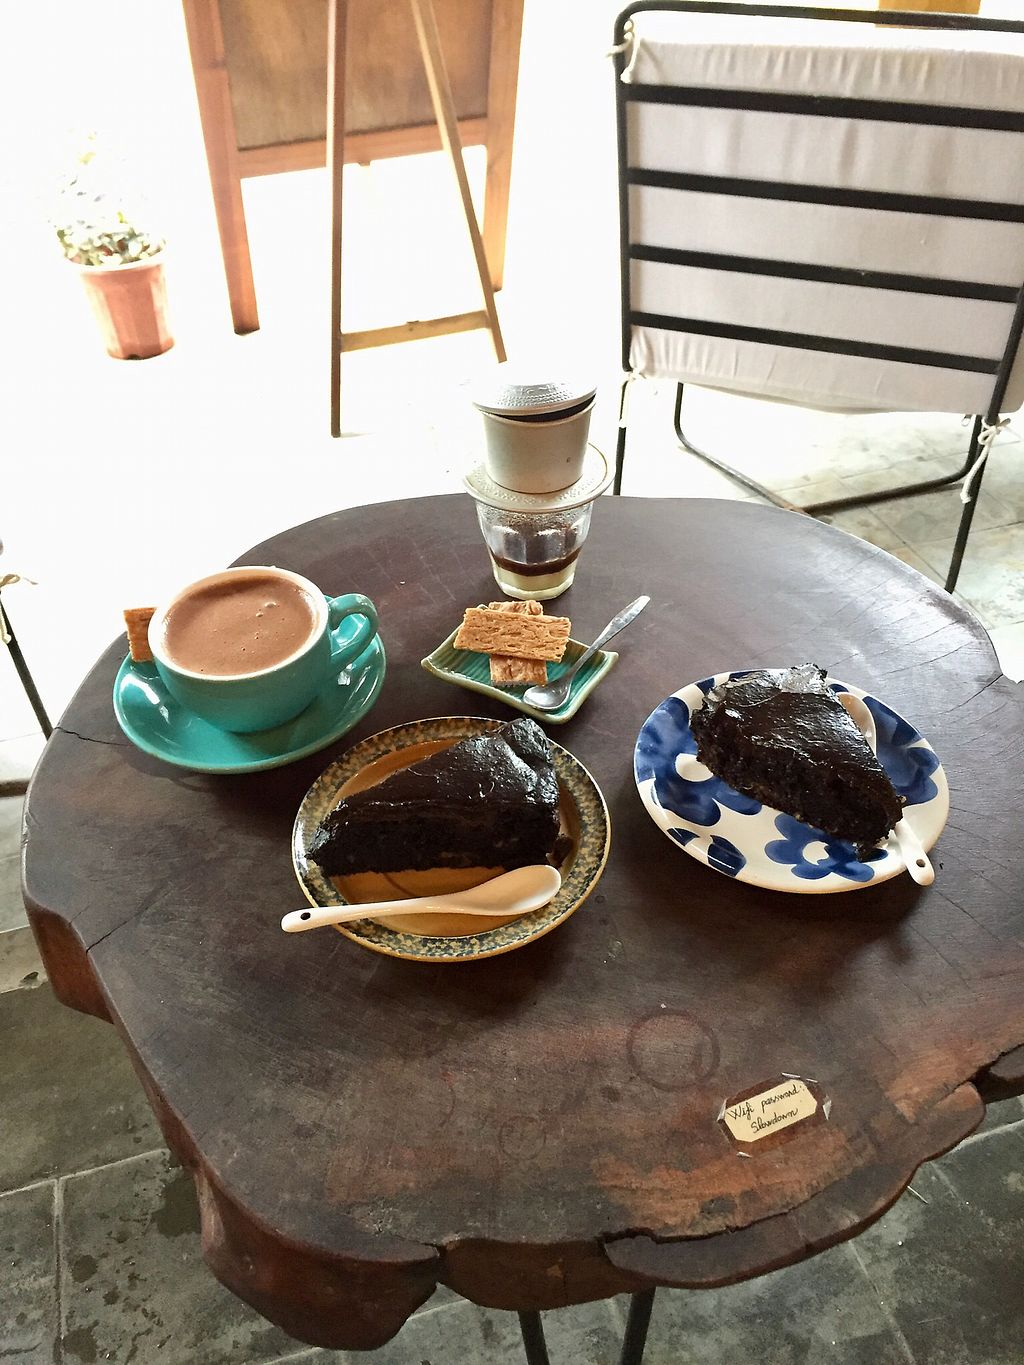 """Photo of Rosie's Cafe  by <a href=""""/members/profile/kars10"""">kars10</a> <br/>Vegan Chocolate Cake  <br/> February 1, 2018  - <a href='/contact/abuse/image/77938/353513'>Report</a>"""